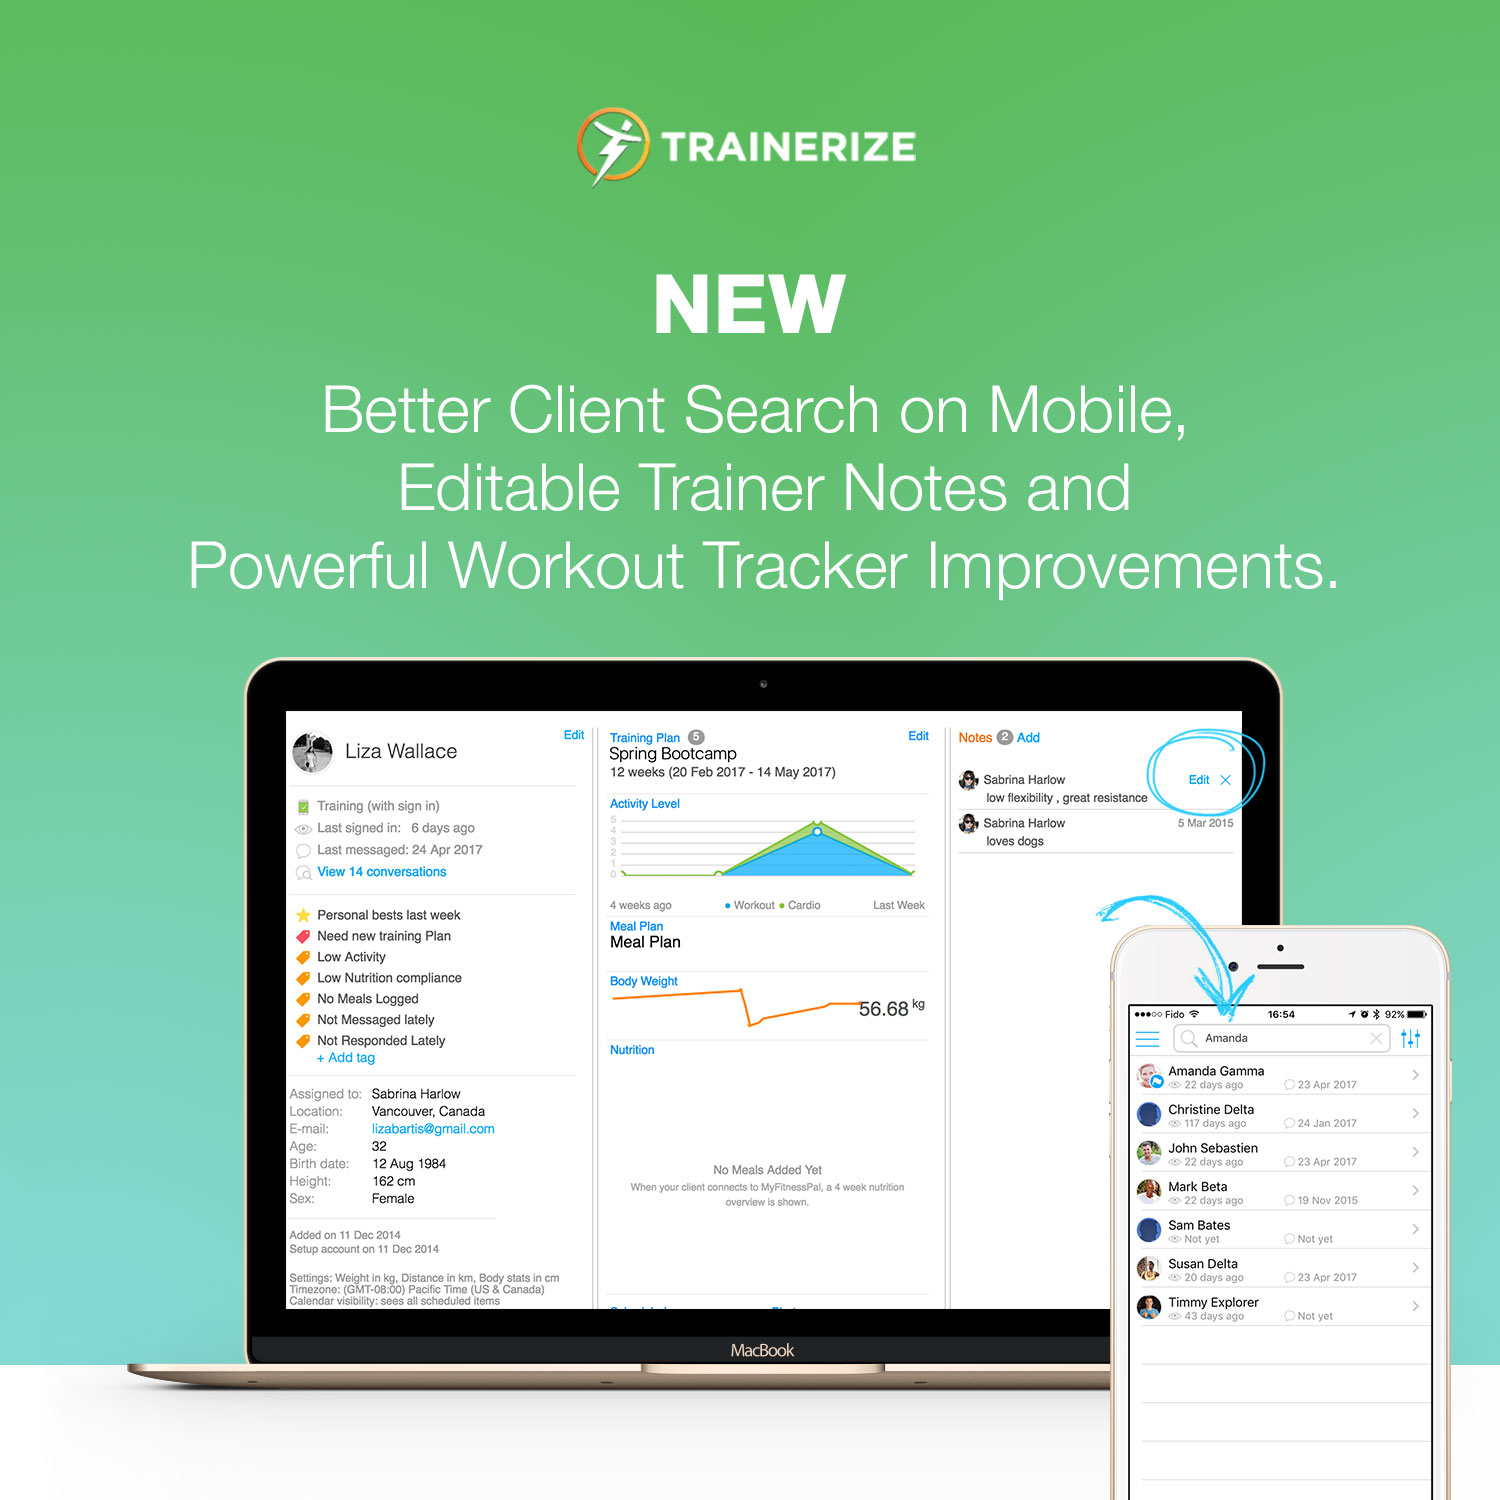 workout tracker, mobile client search, editable trainer notes